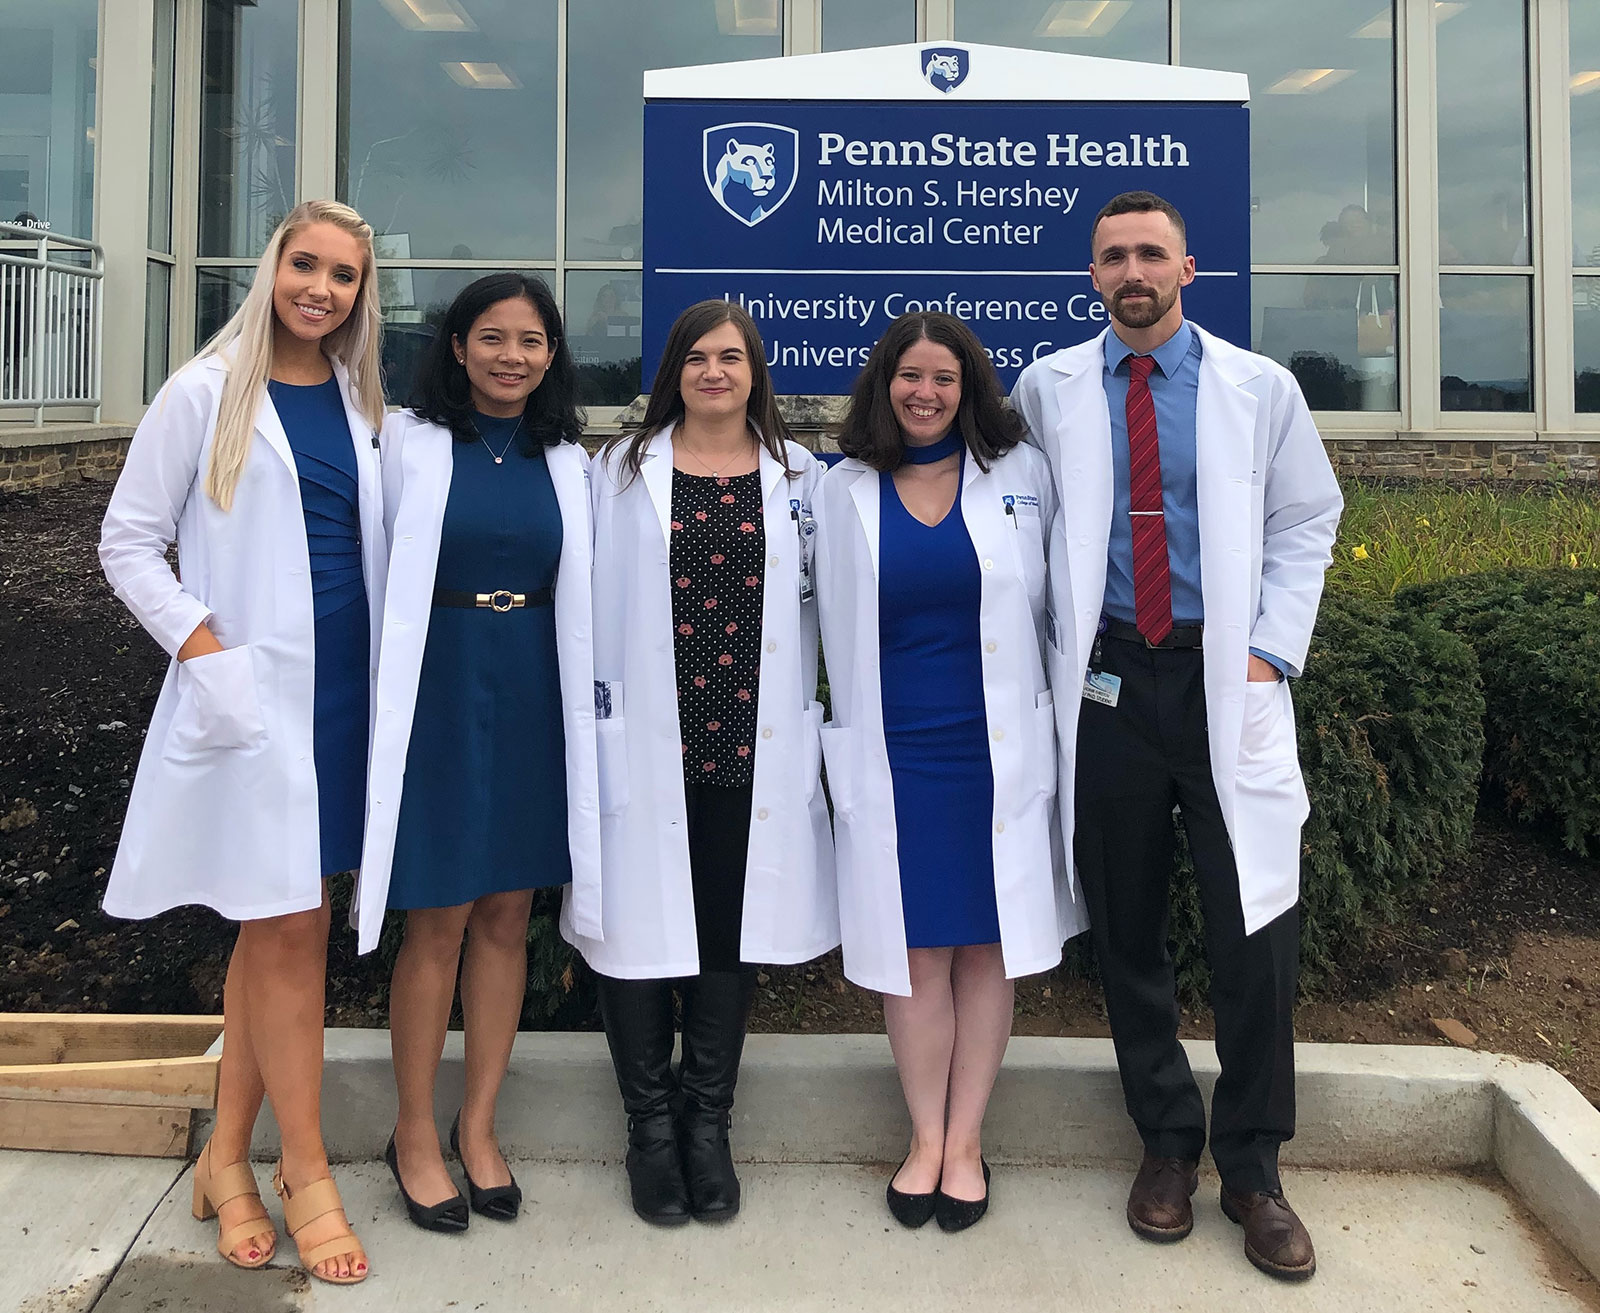 Five graduate students are seen wearing long laboratory coats and dress clothes, standing in front of a Penn State Health conference center in August 2019.